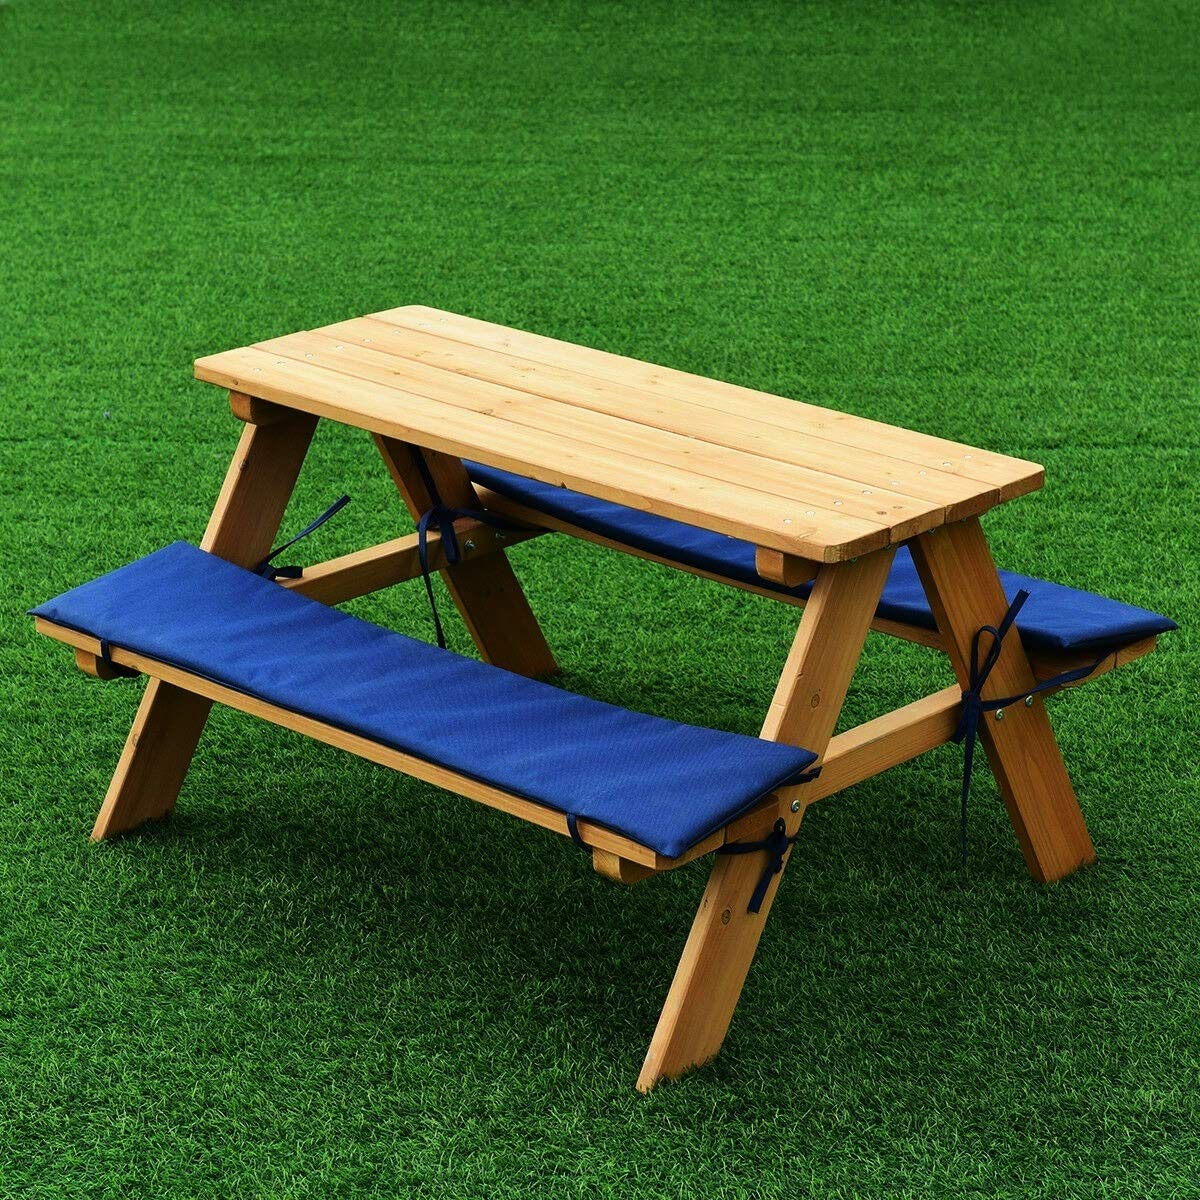 oneoneshop Kids Wooden Picnic Table Play Table Beach Table Bench Set Children Outdoor Garden Yard Beach Cushion 2 Benches with 4 Seats 35x31x20 inch Weight 17.5 lbs Set of 1 by oneoneshop